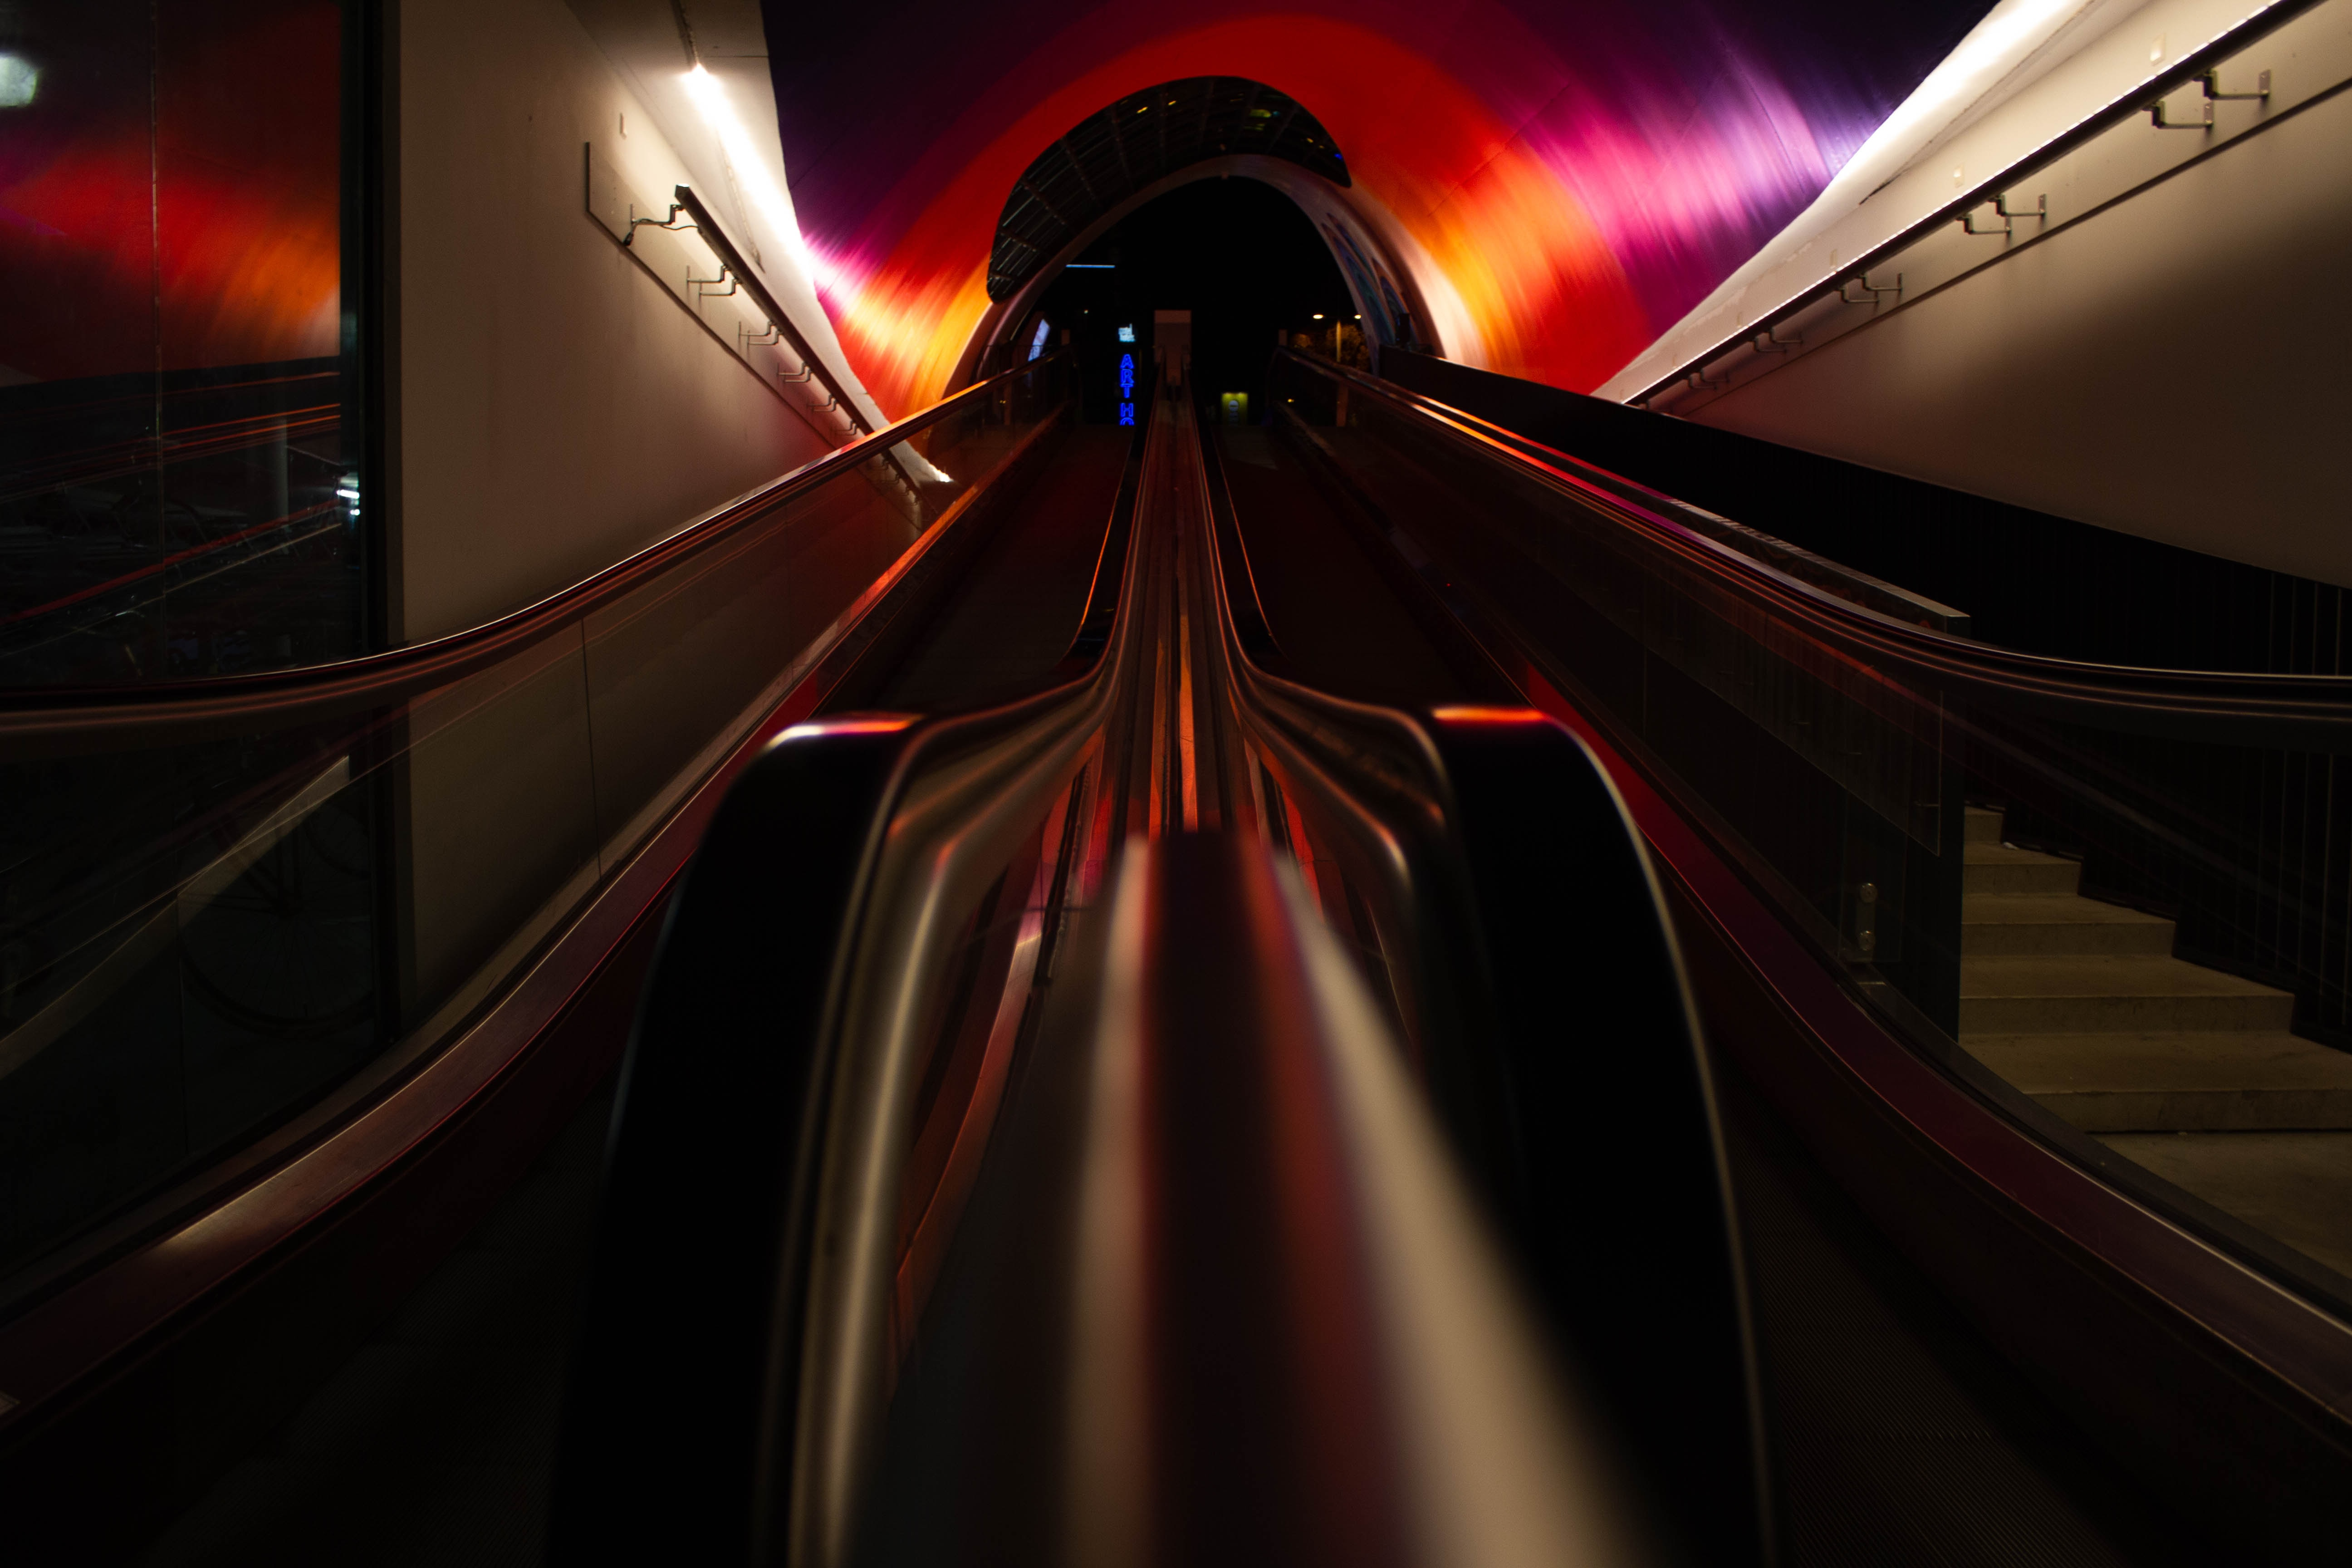 129414 Screensavers and Wallpapers Metro for phone. Download Dark, Miscellanea, Miscellaneous, Tunnel, Underground, Metro, Subway, Escalator pictures for free